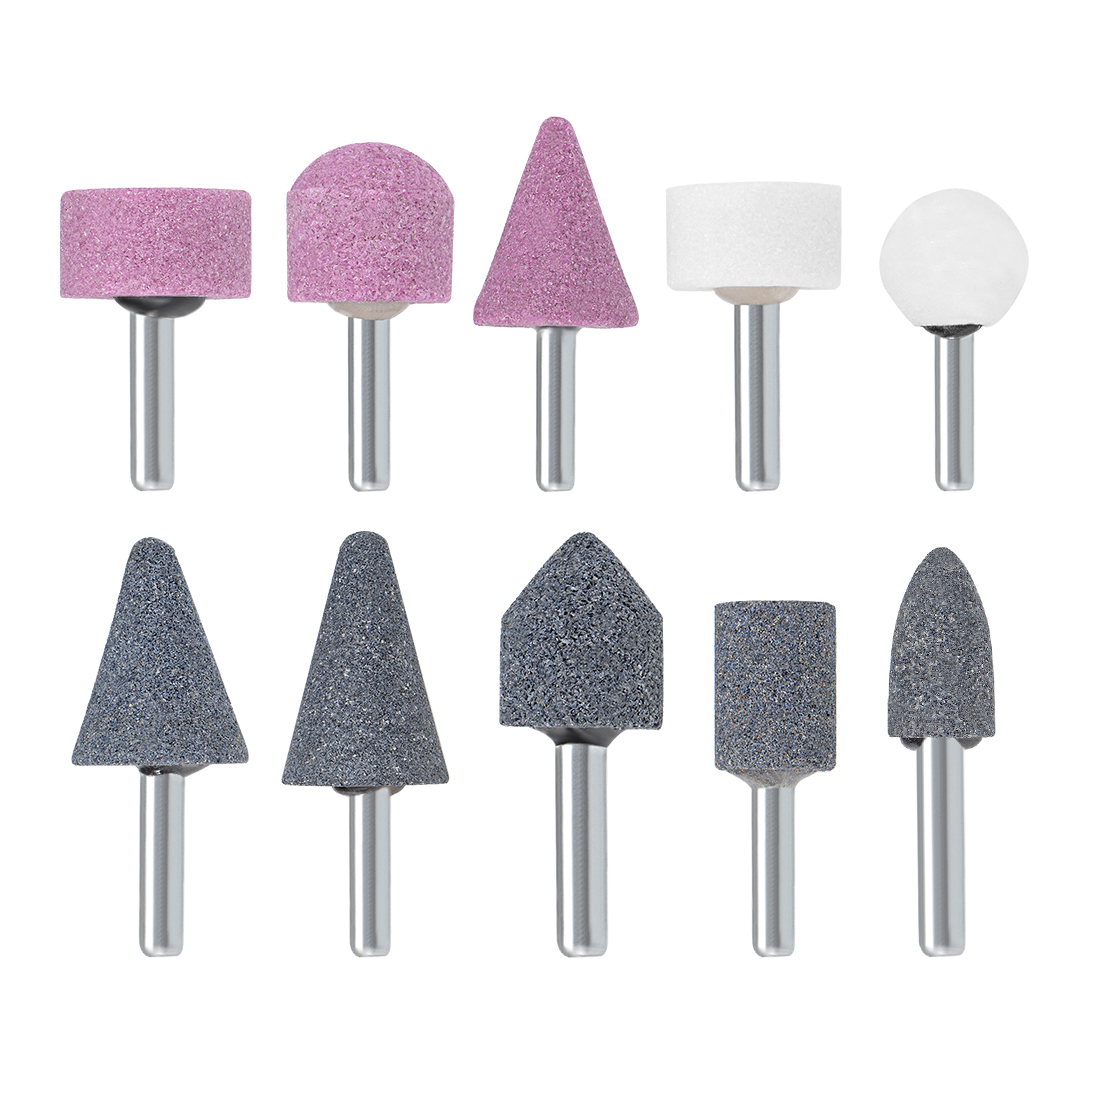 Abrasive Stone Points Set Grinding Wheel with 1/4-inch Shank 10 Pcs